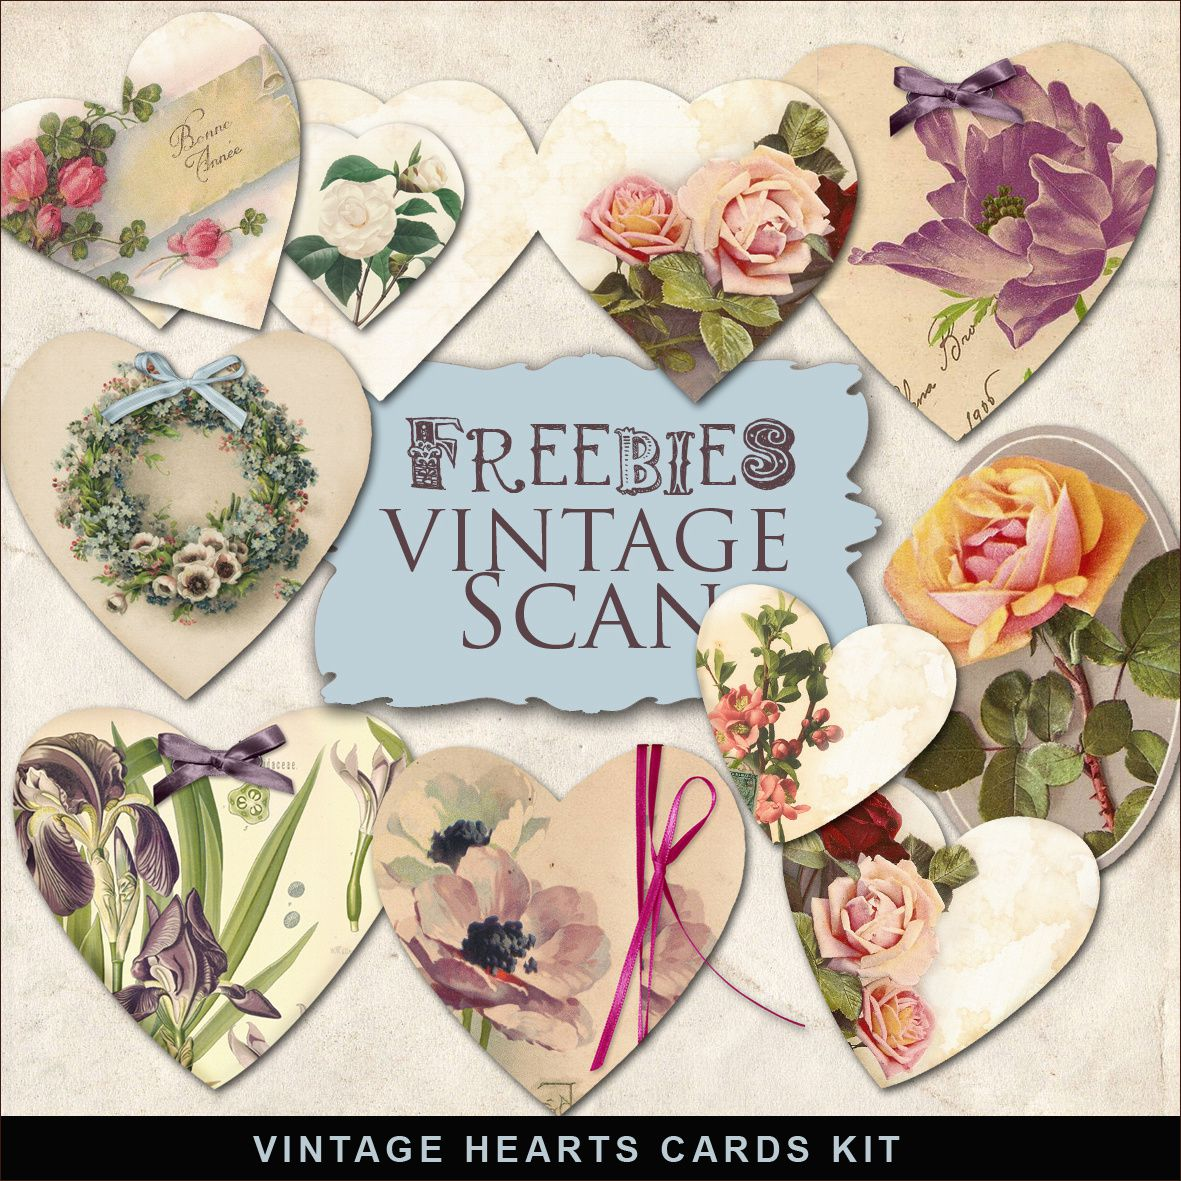 Vintage,Set,scrap,kit,free,Page,Scrapbooking,Sketche,digital,layout,bases,techniques,dérivés,kits,freebies,fathia,nasr,scraps,valentine,day,saint,valentin,full,heart,cœur,